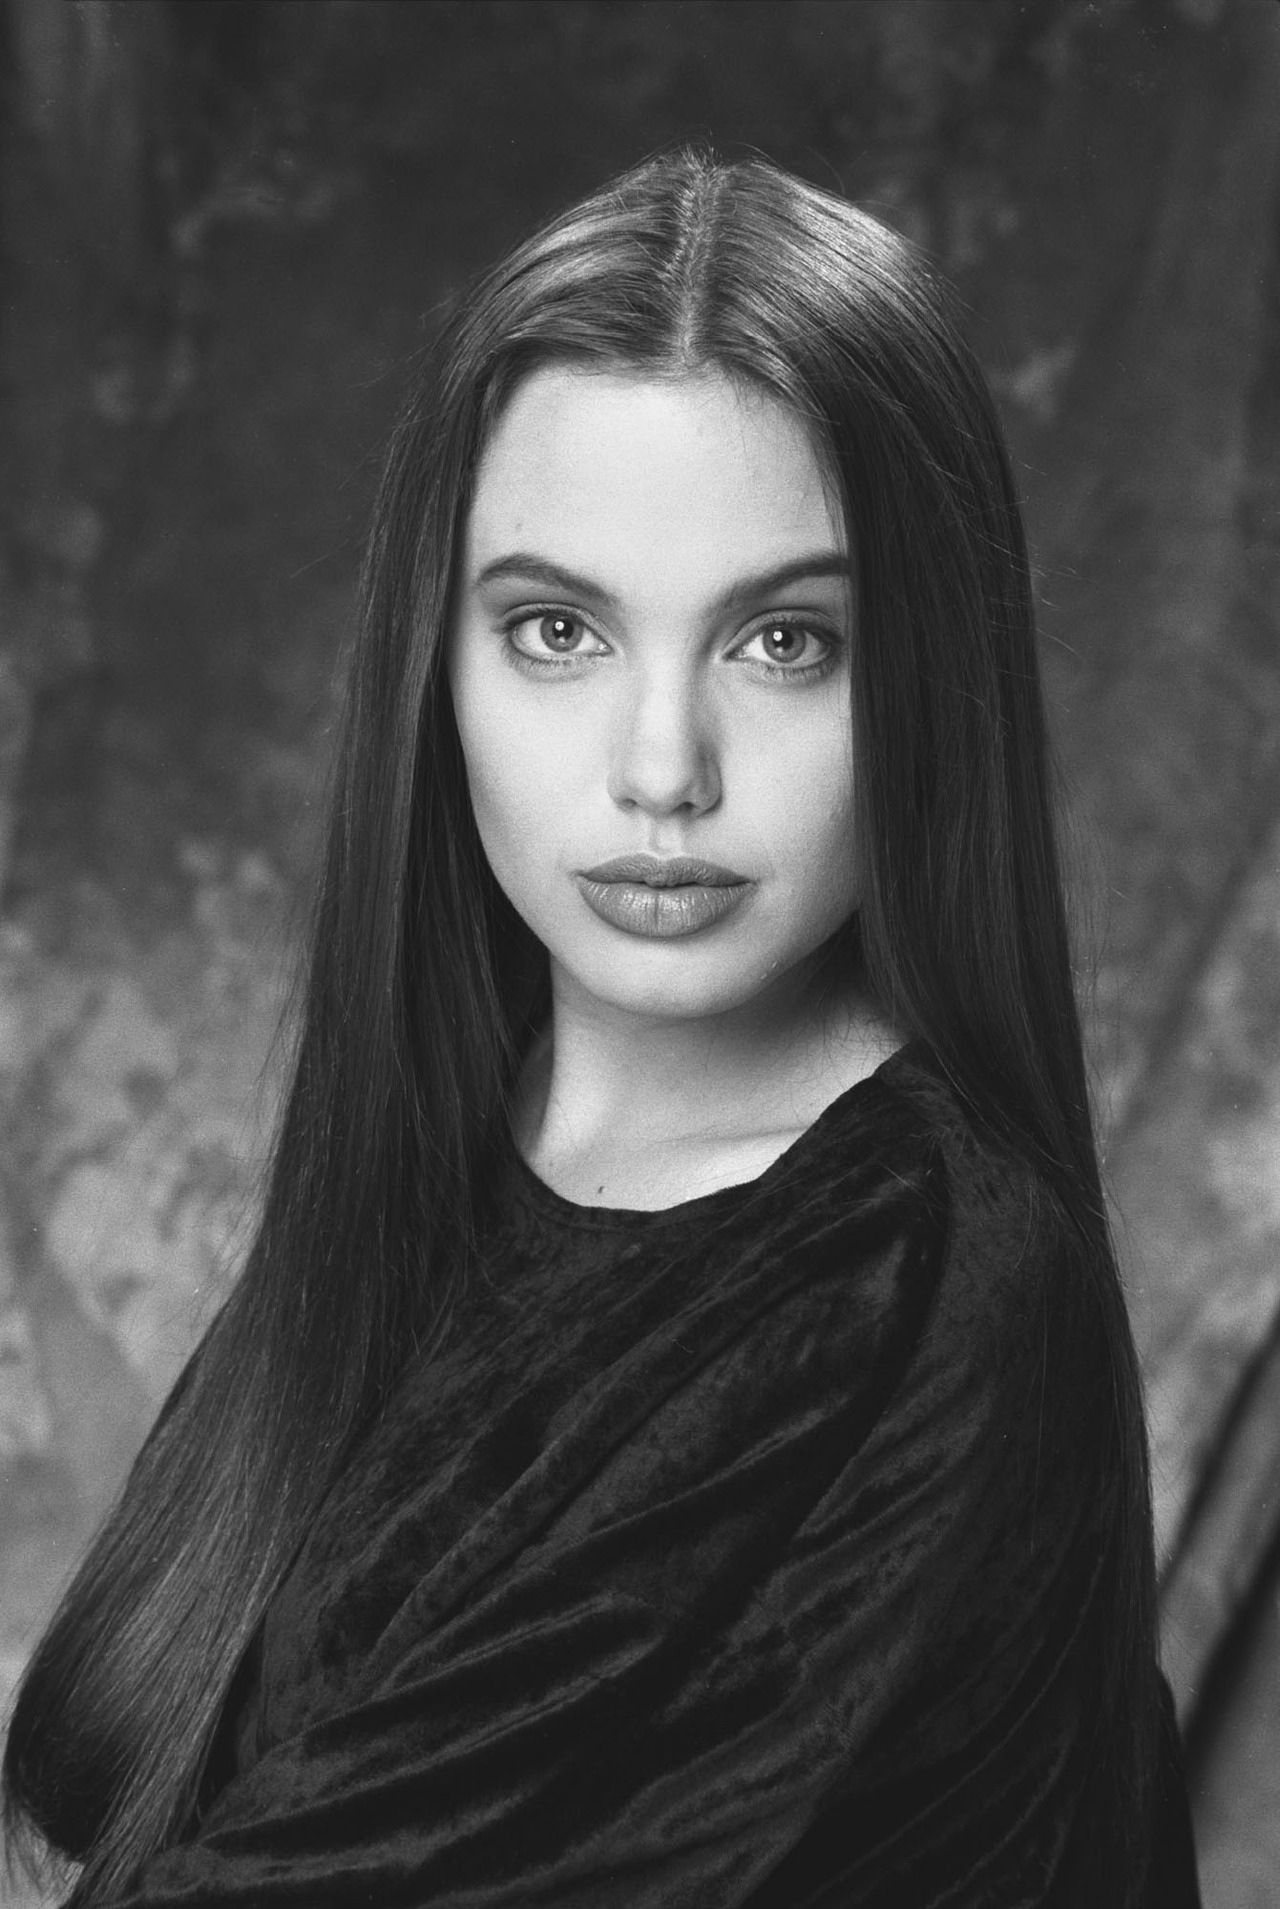 Lady Gaga High School Yearbook Picture 21 Young Angelina Joli...